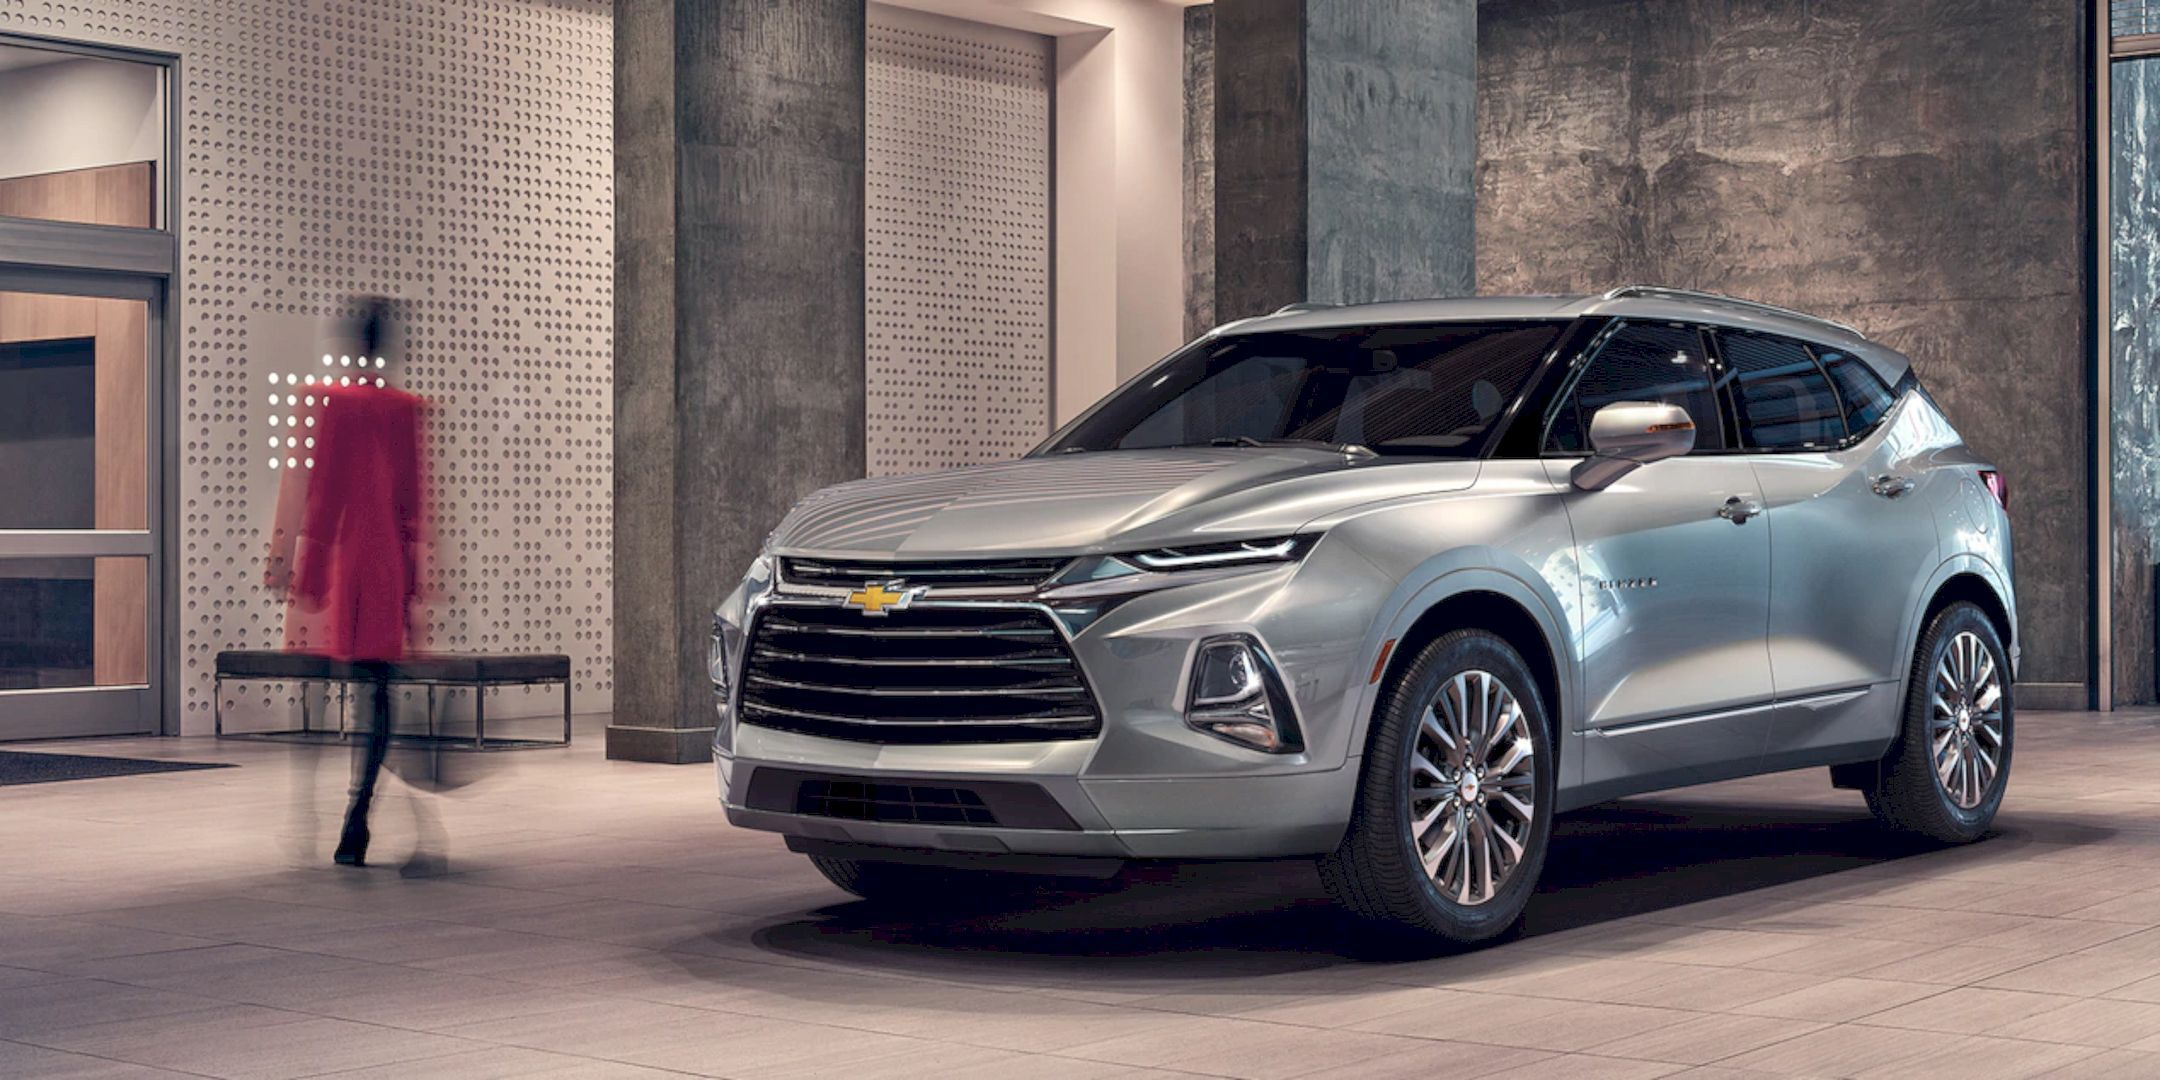 The All New Blazer By Chevrolet A Stylish Utility Vehicle In 2020 With Images Chevrolet Blazer Sporty Suv Chevrolet